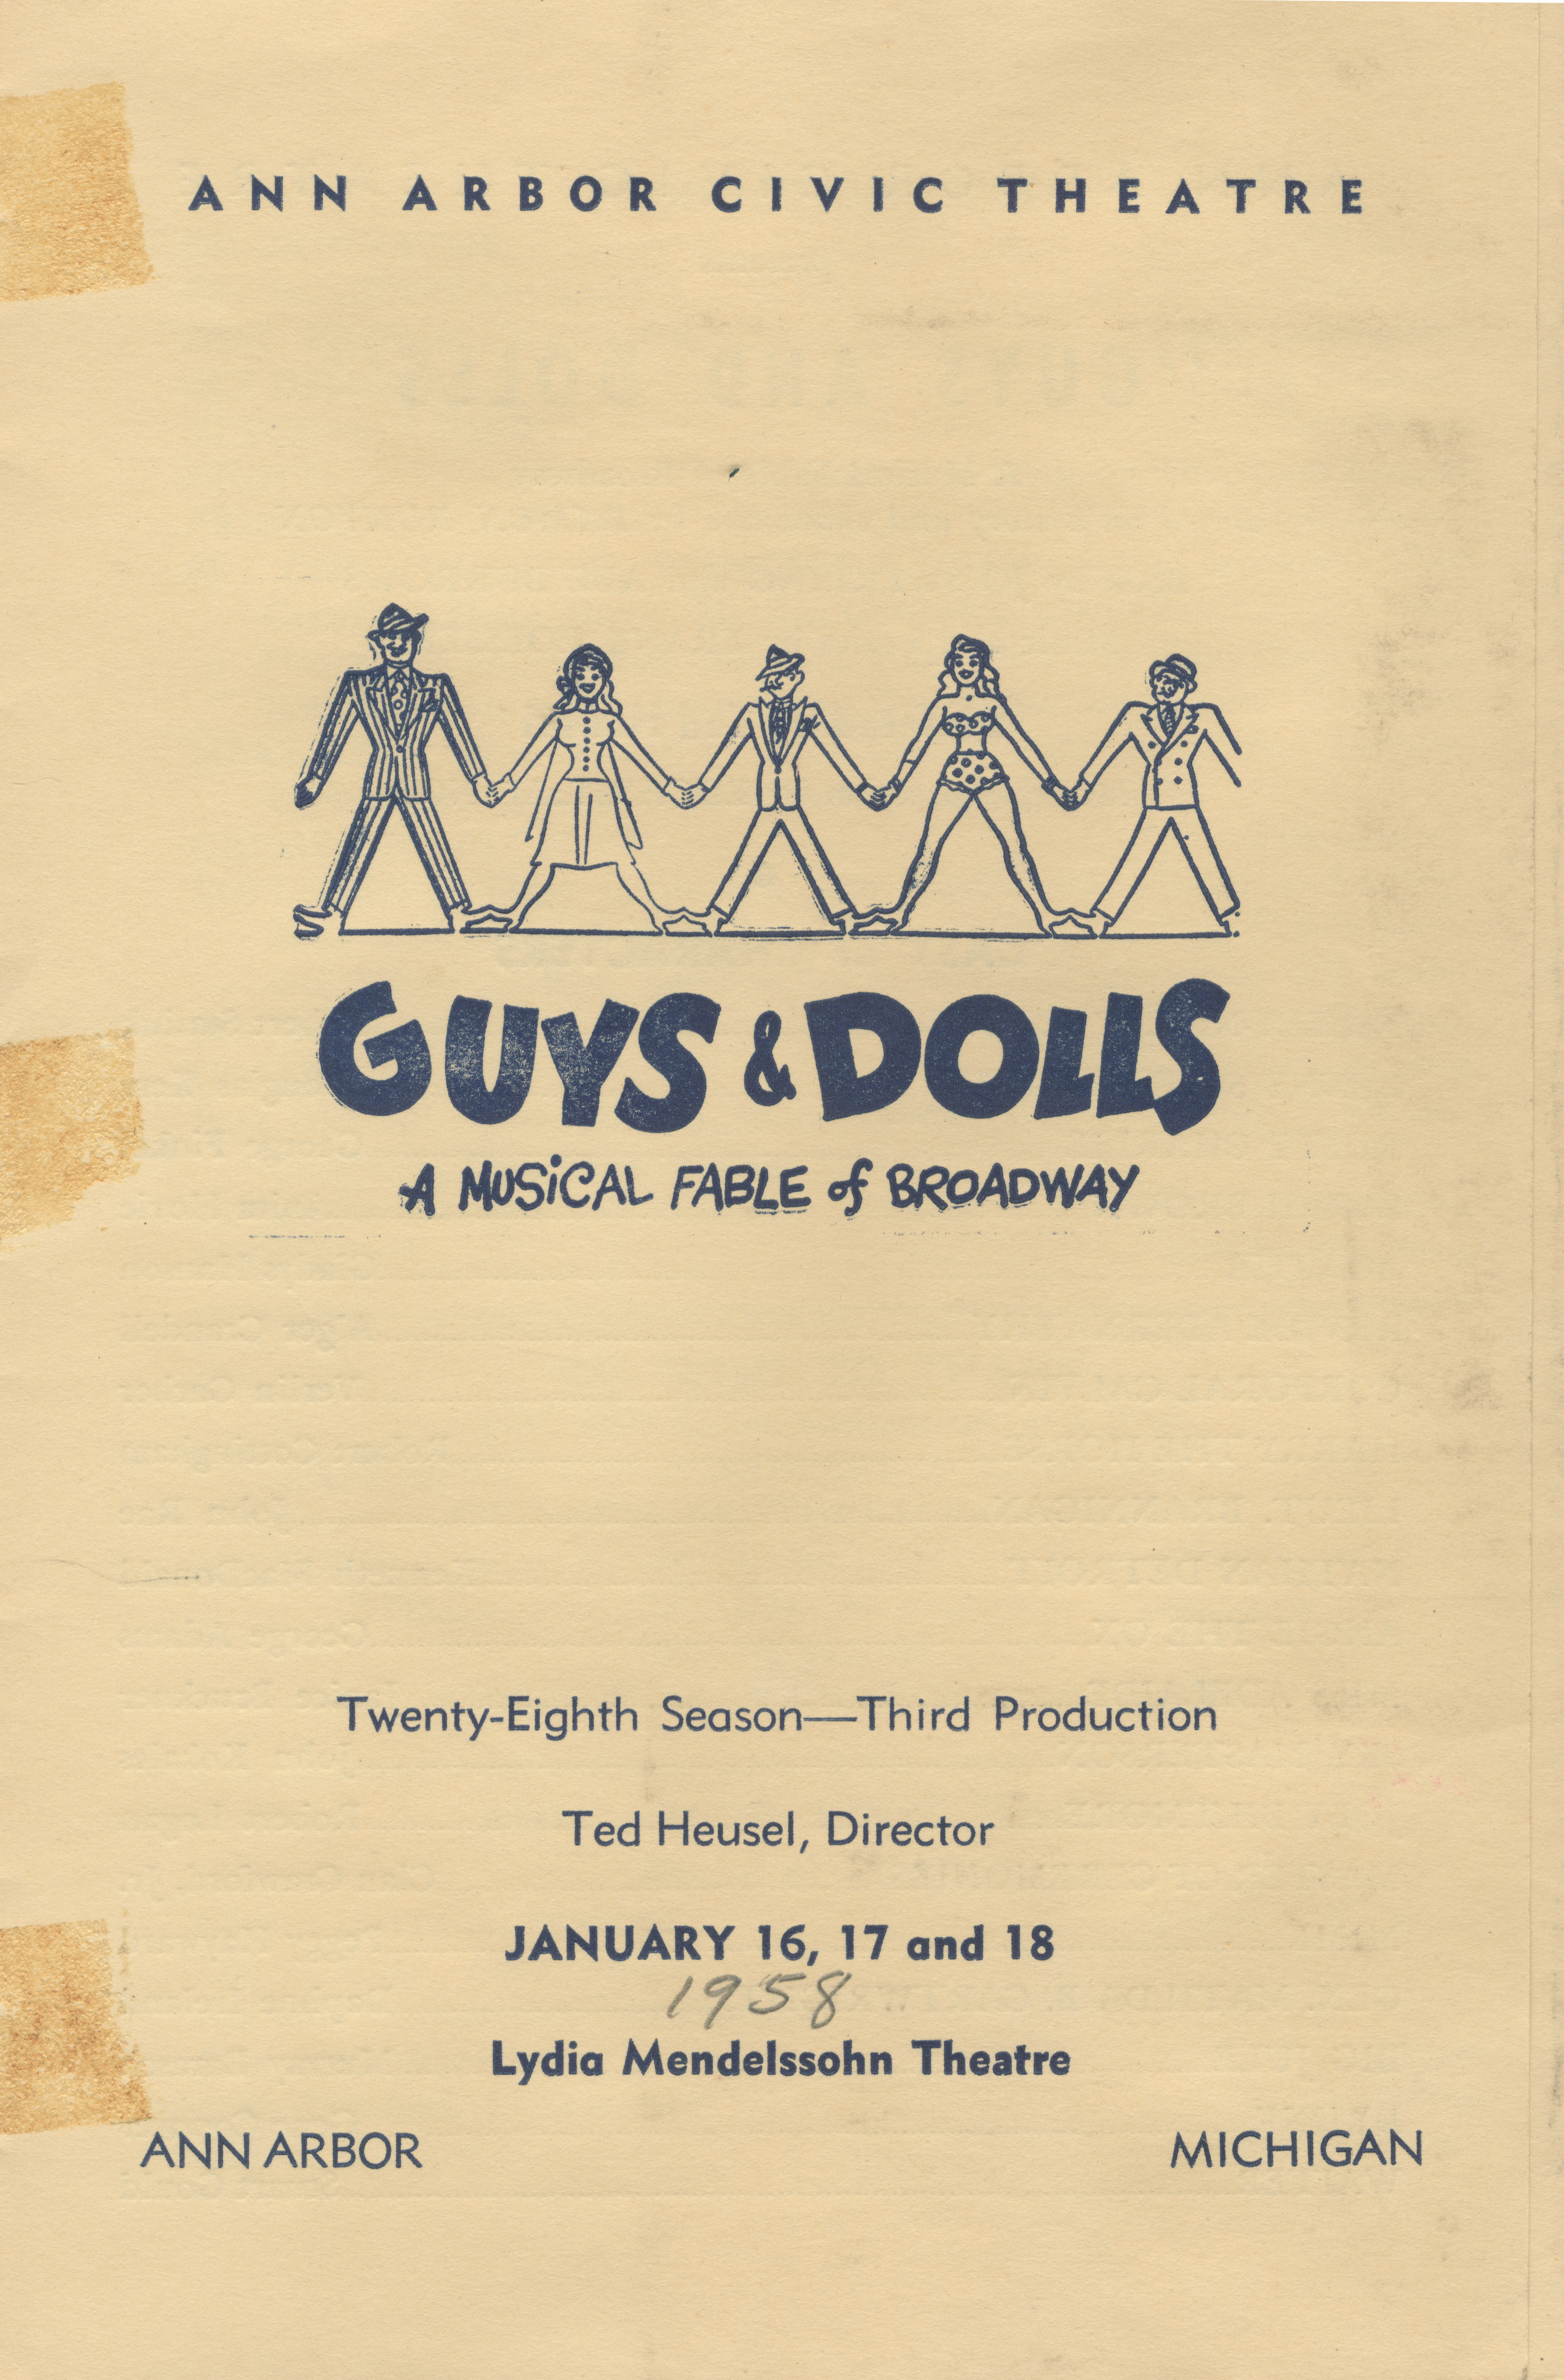 Ann Arbor Civic Theatre Program: Guys and Dolls, January 16, 1958 image